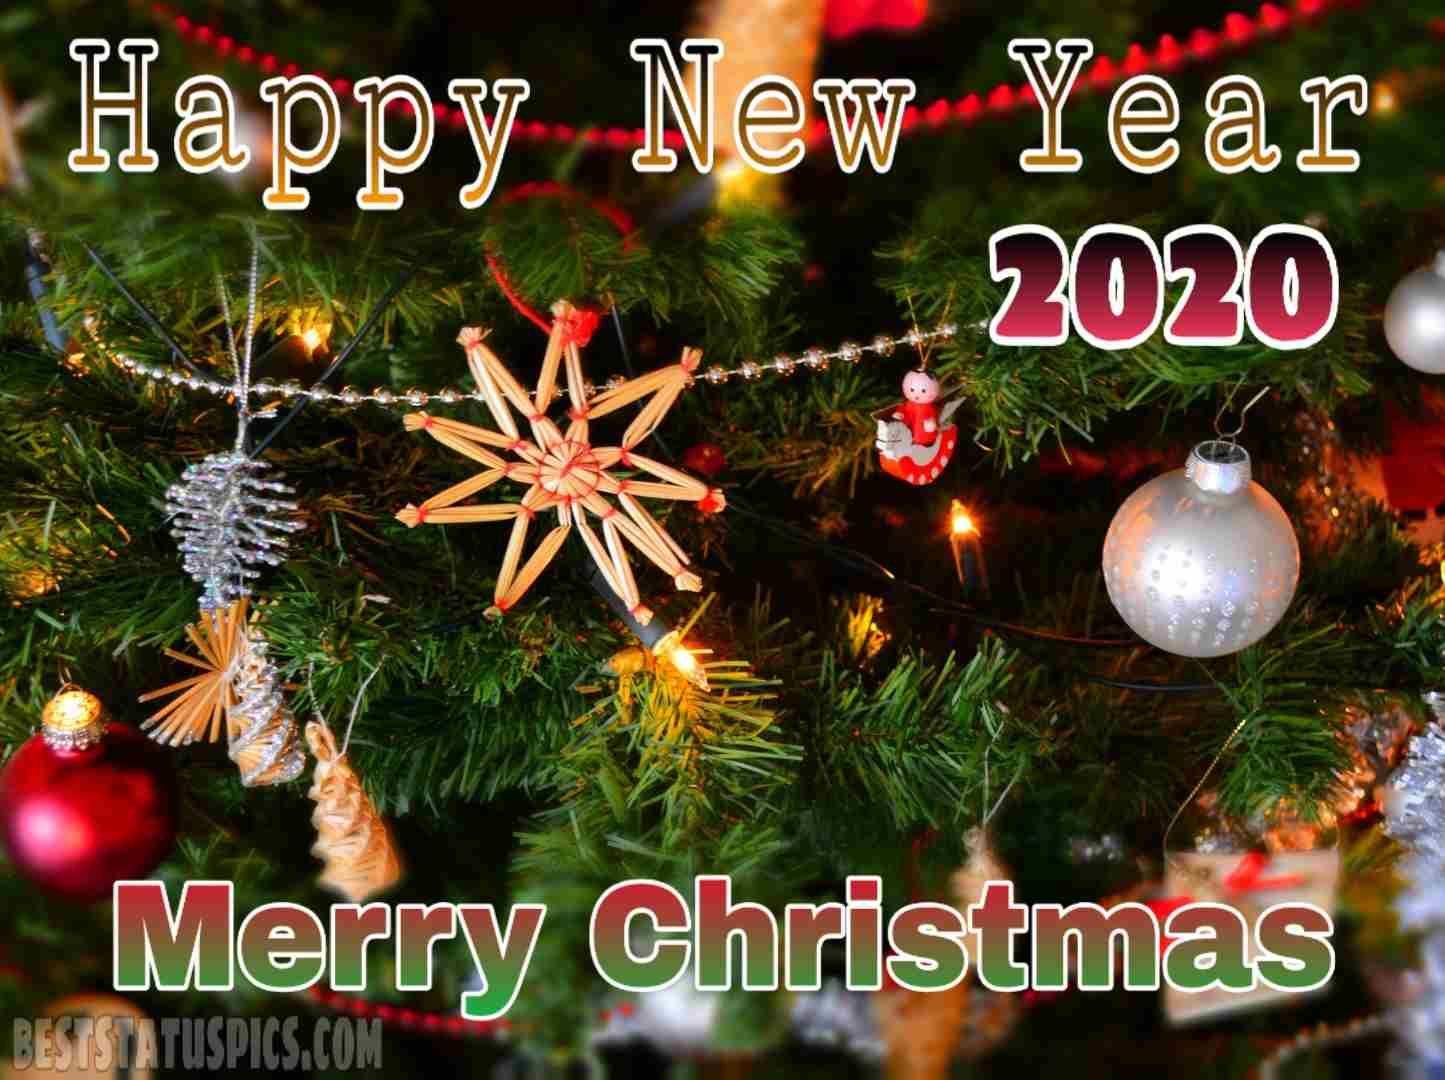 New Phones For Christmas 2020 Free download download Merry Christmas Happy New Year 2020